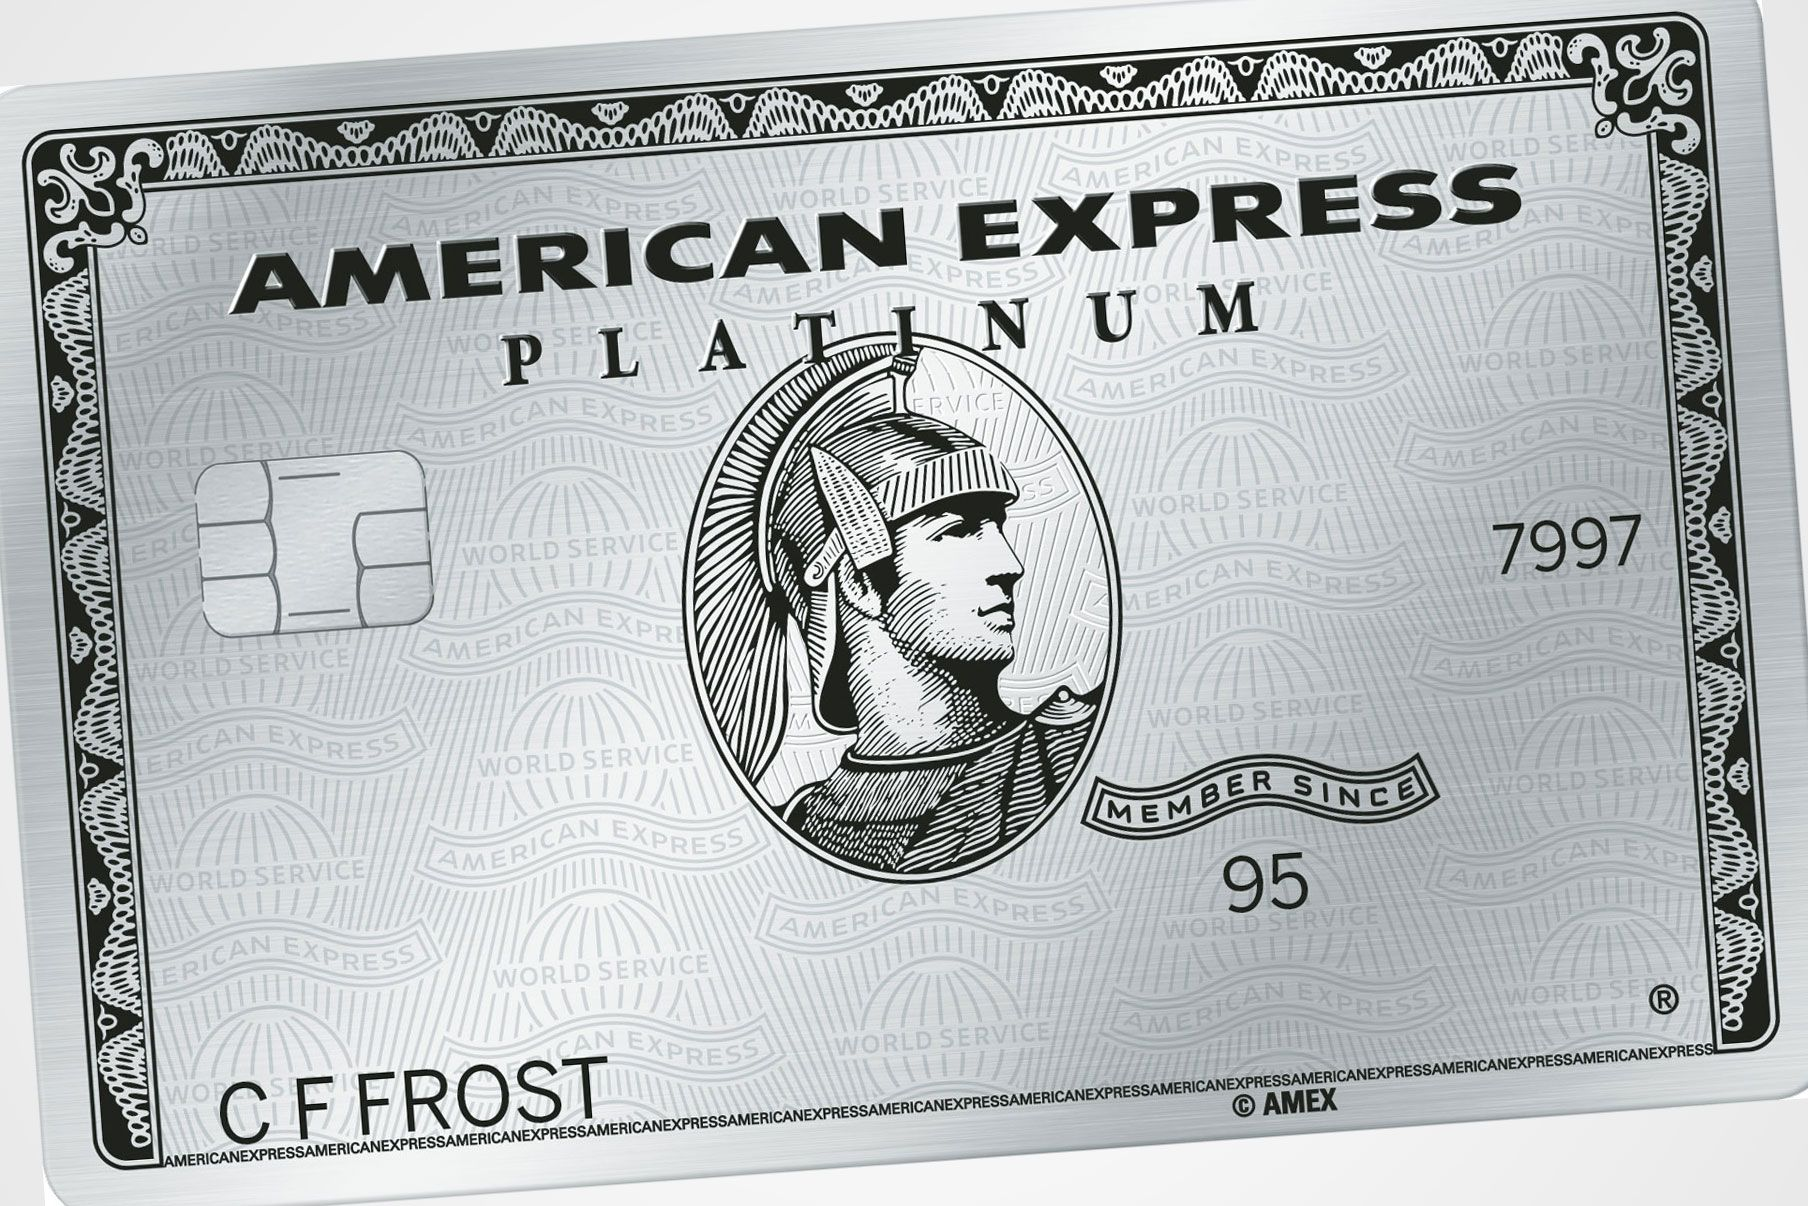 American Express Platinum Credit card for United bonus miles points collection